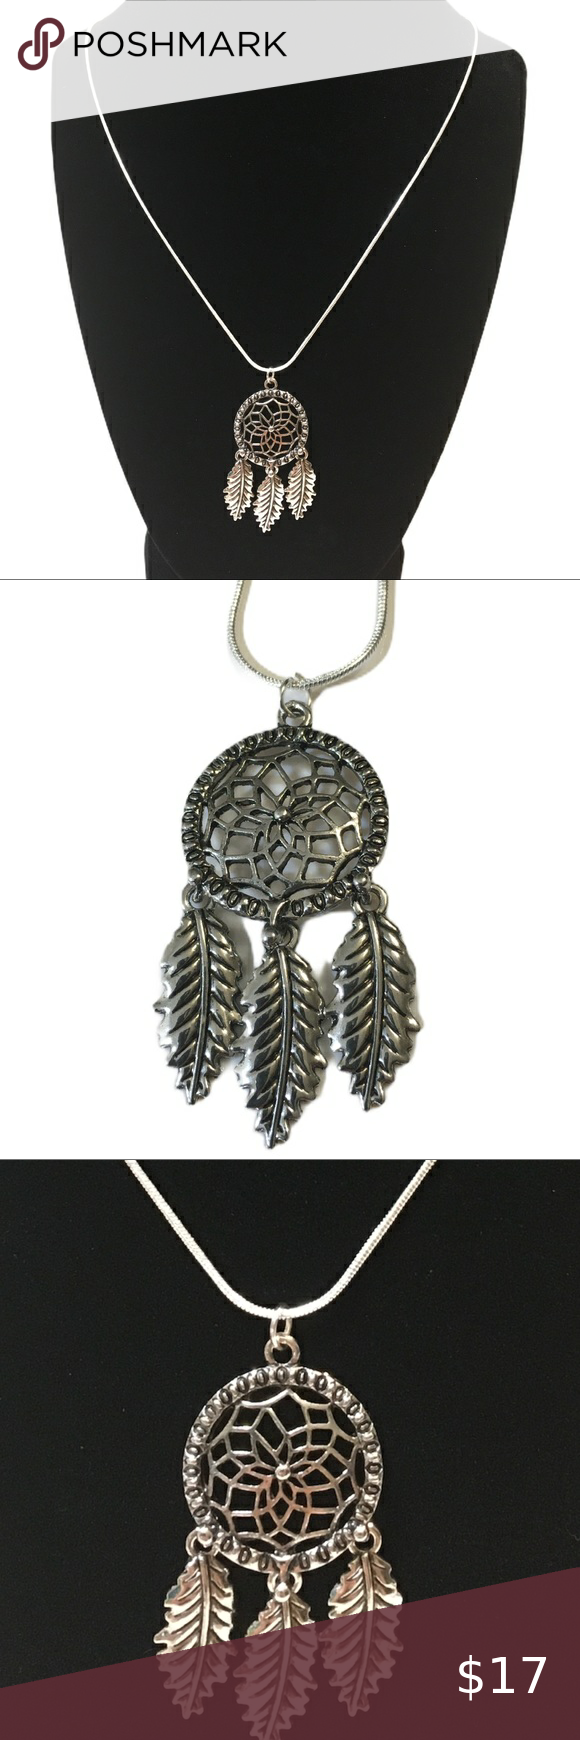 Necklace-Dream Catcher, 925 Sterling Silver Chain Necklace-Dream Catcher Feather, 925 Sterling Silver Chain.  Pendant approx 1.5 inches tall, 1 in wide.  Pair this with the Silver Dream Catcher Earrings available in my closet.  Make a bundle, then make an offer!  Have a wonderful day!! Trendy Designs Jewelry Necklaces